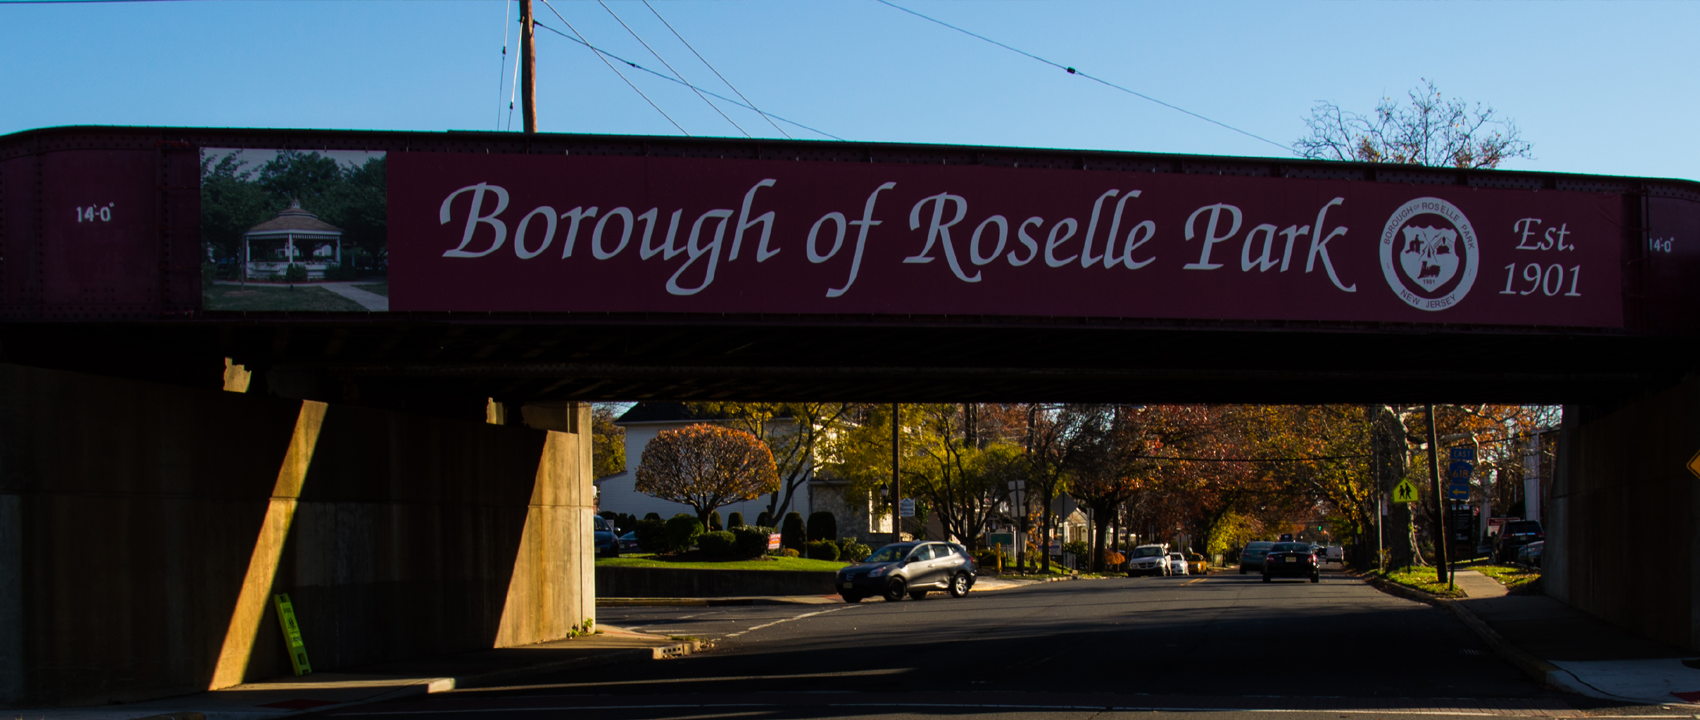 The Borough of Roselle Park